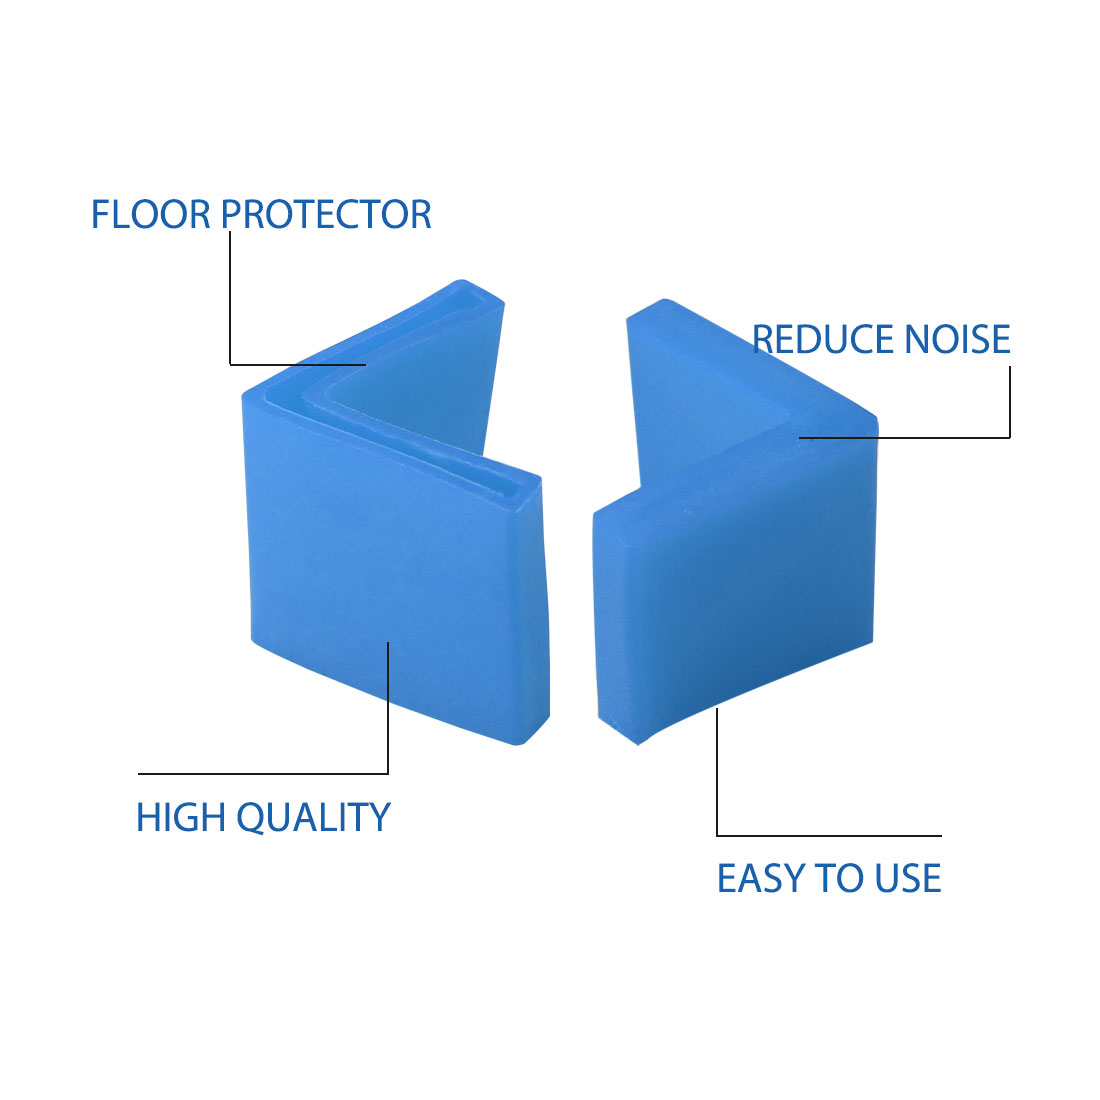 50mm x 50mm Angle Iron Foot Pad L Shaped PVC Leg Cap Floor Protector Blue 24pcs - image 5 of 7